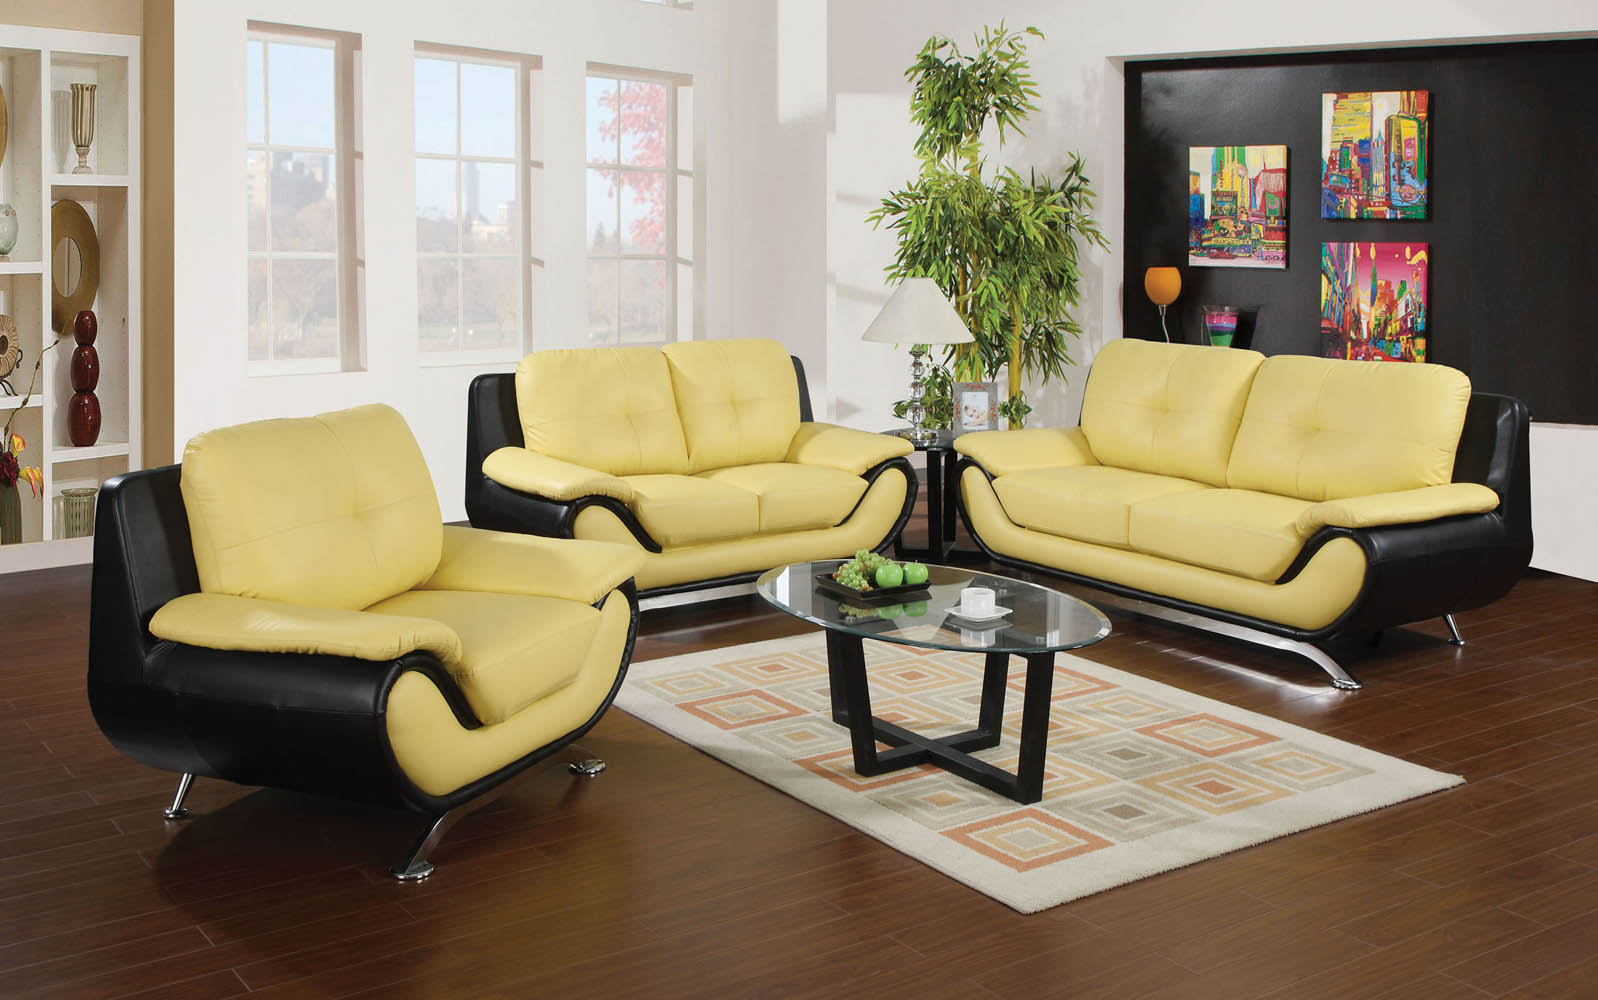 Black And Yellow Modern Sofa